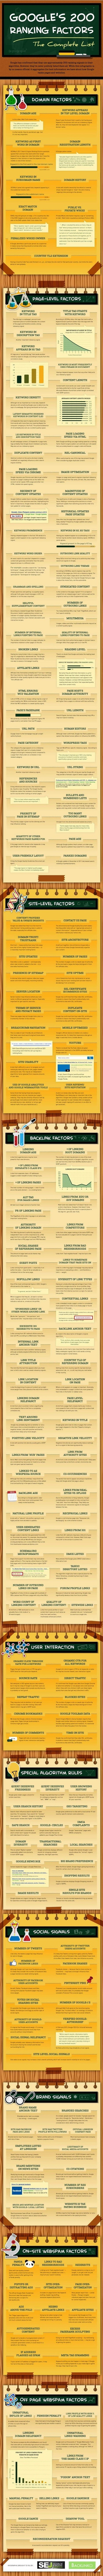 Google's 200 ranking factors: The complete list [infographic] | Technology , SEO and Social Media | Scoop.it